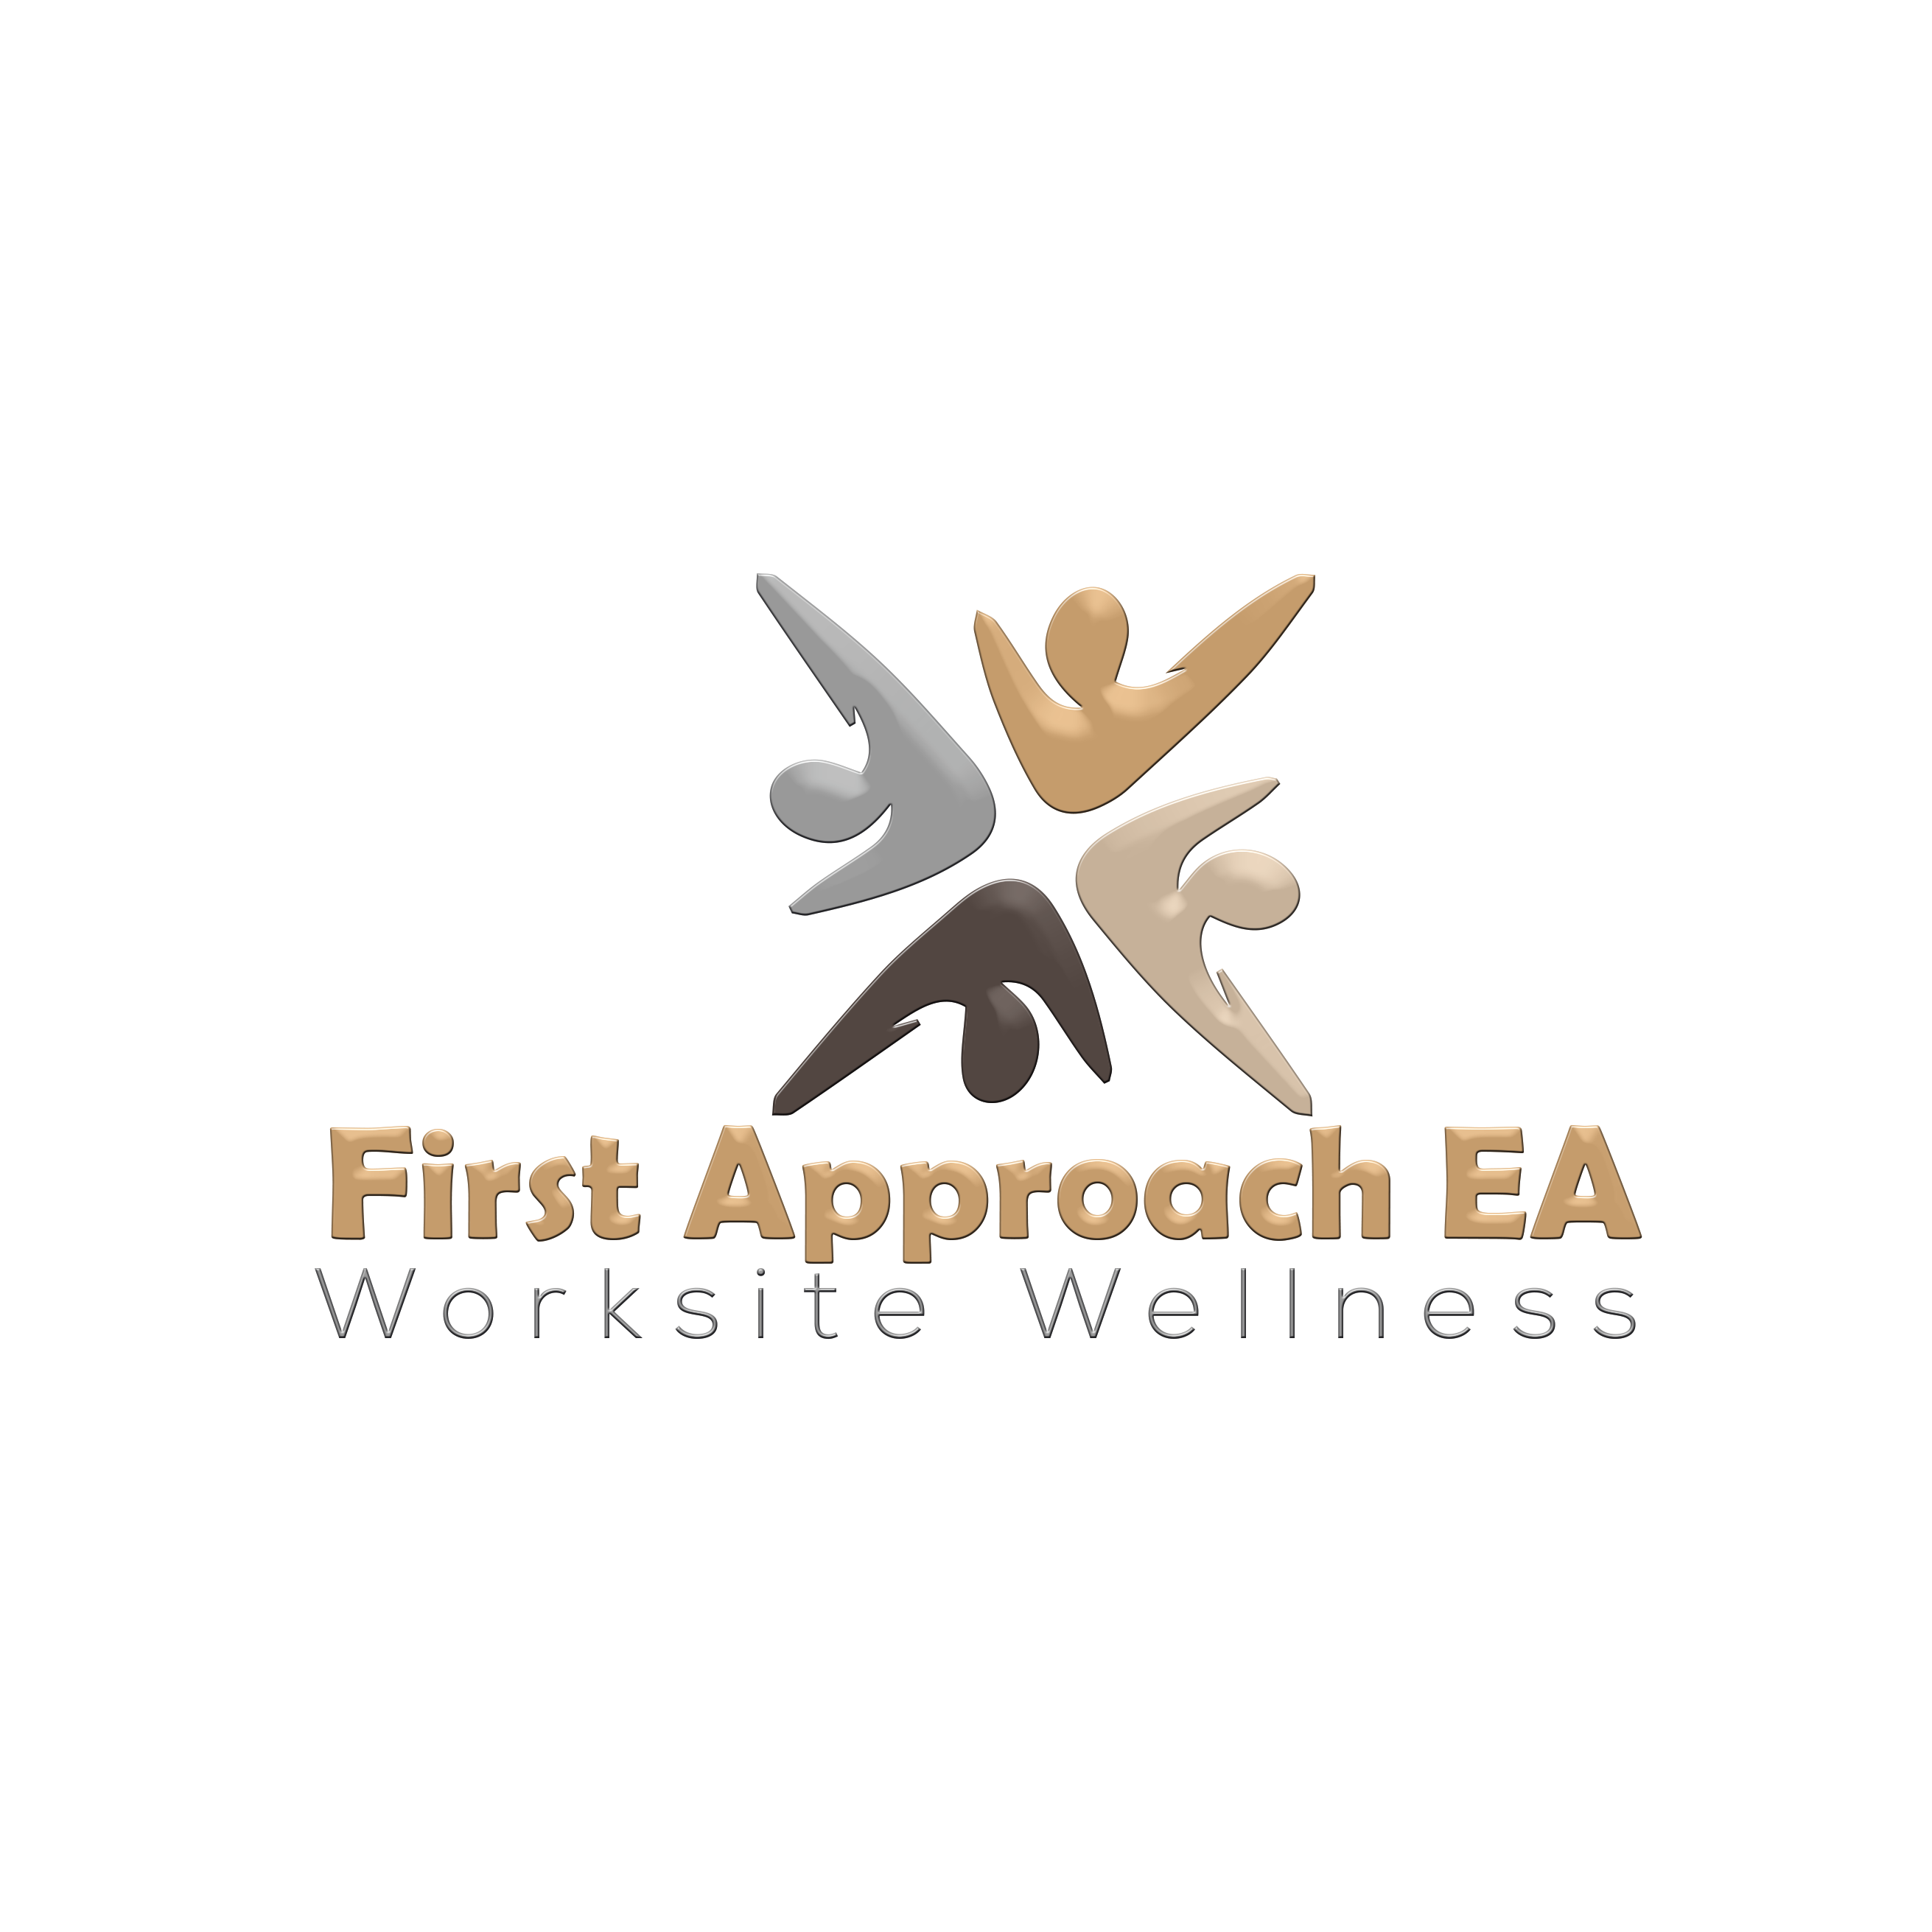 First Approach EA/ Worksite Wellness image 18